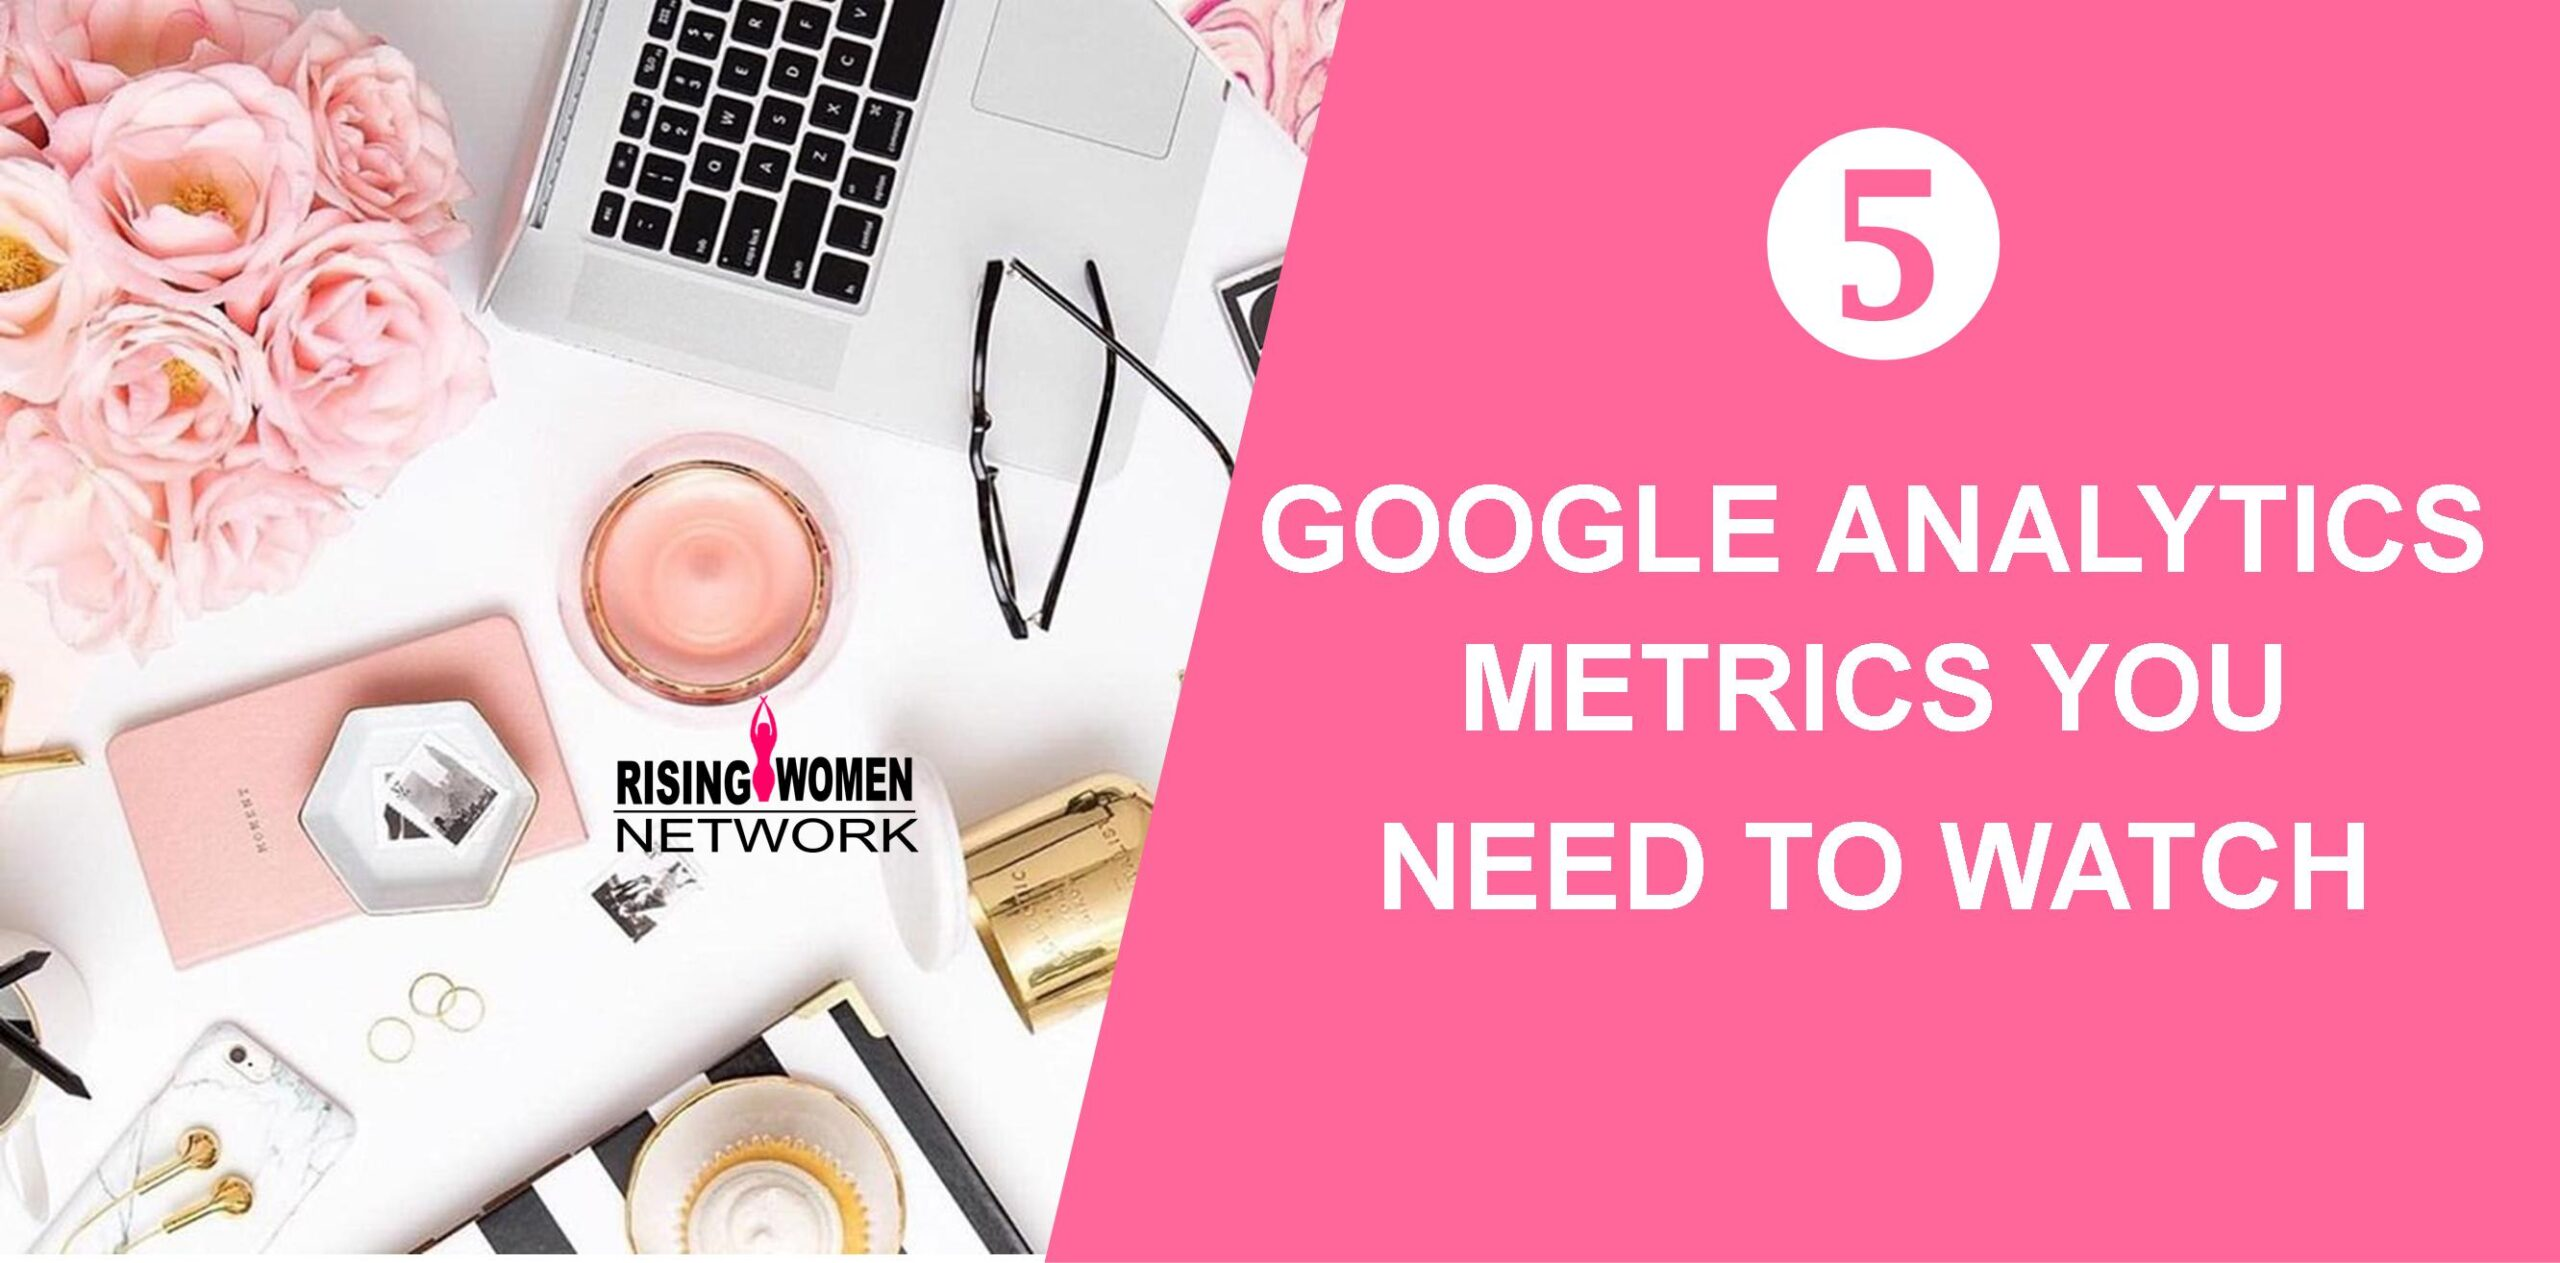 With so many possible metrics in Google Analytics, you could easily spend all day analyzing, and who has time for that? Get the most out of your analytics by watching these 5 key analytics metrics (and figure out how to interpret them).